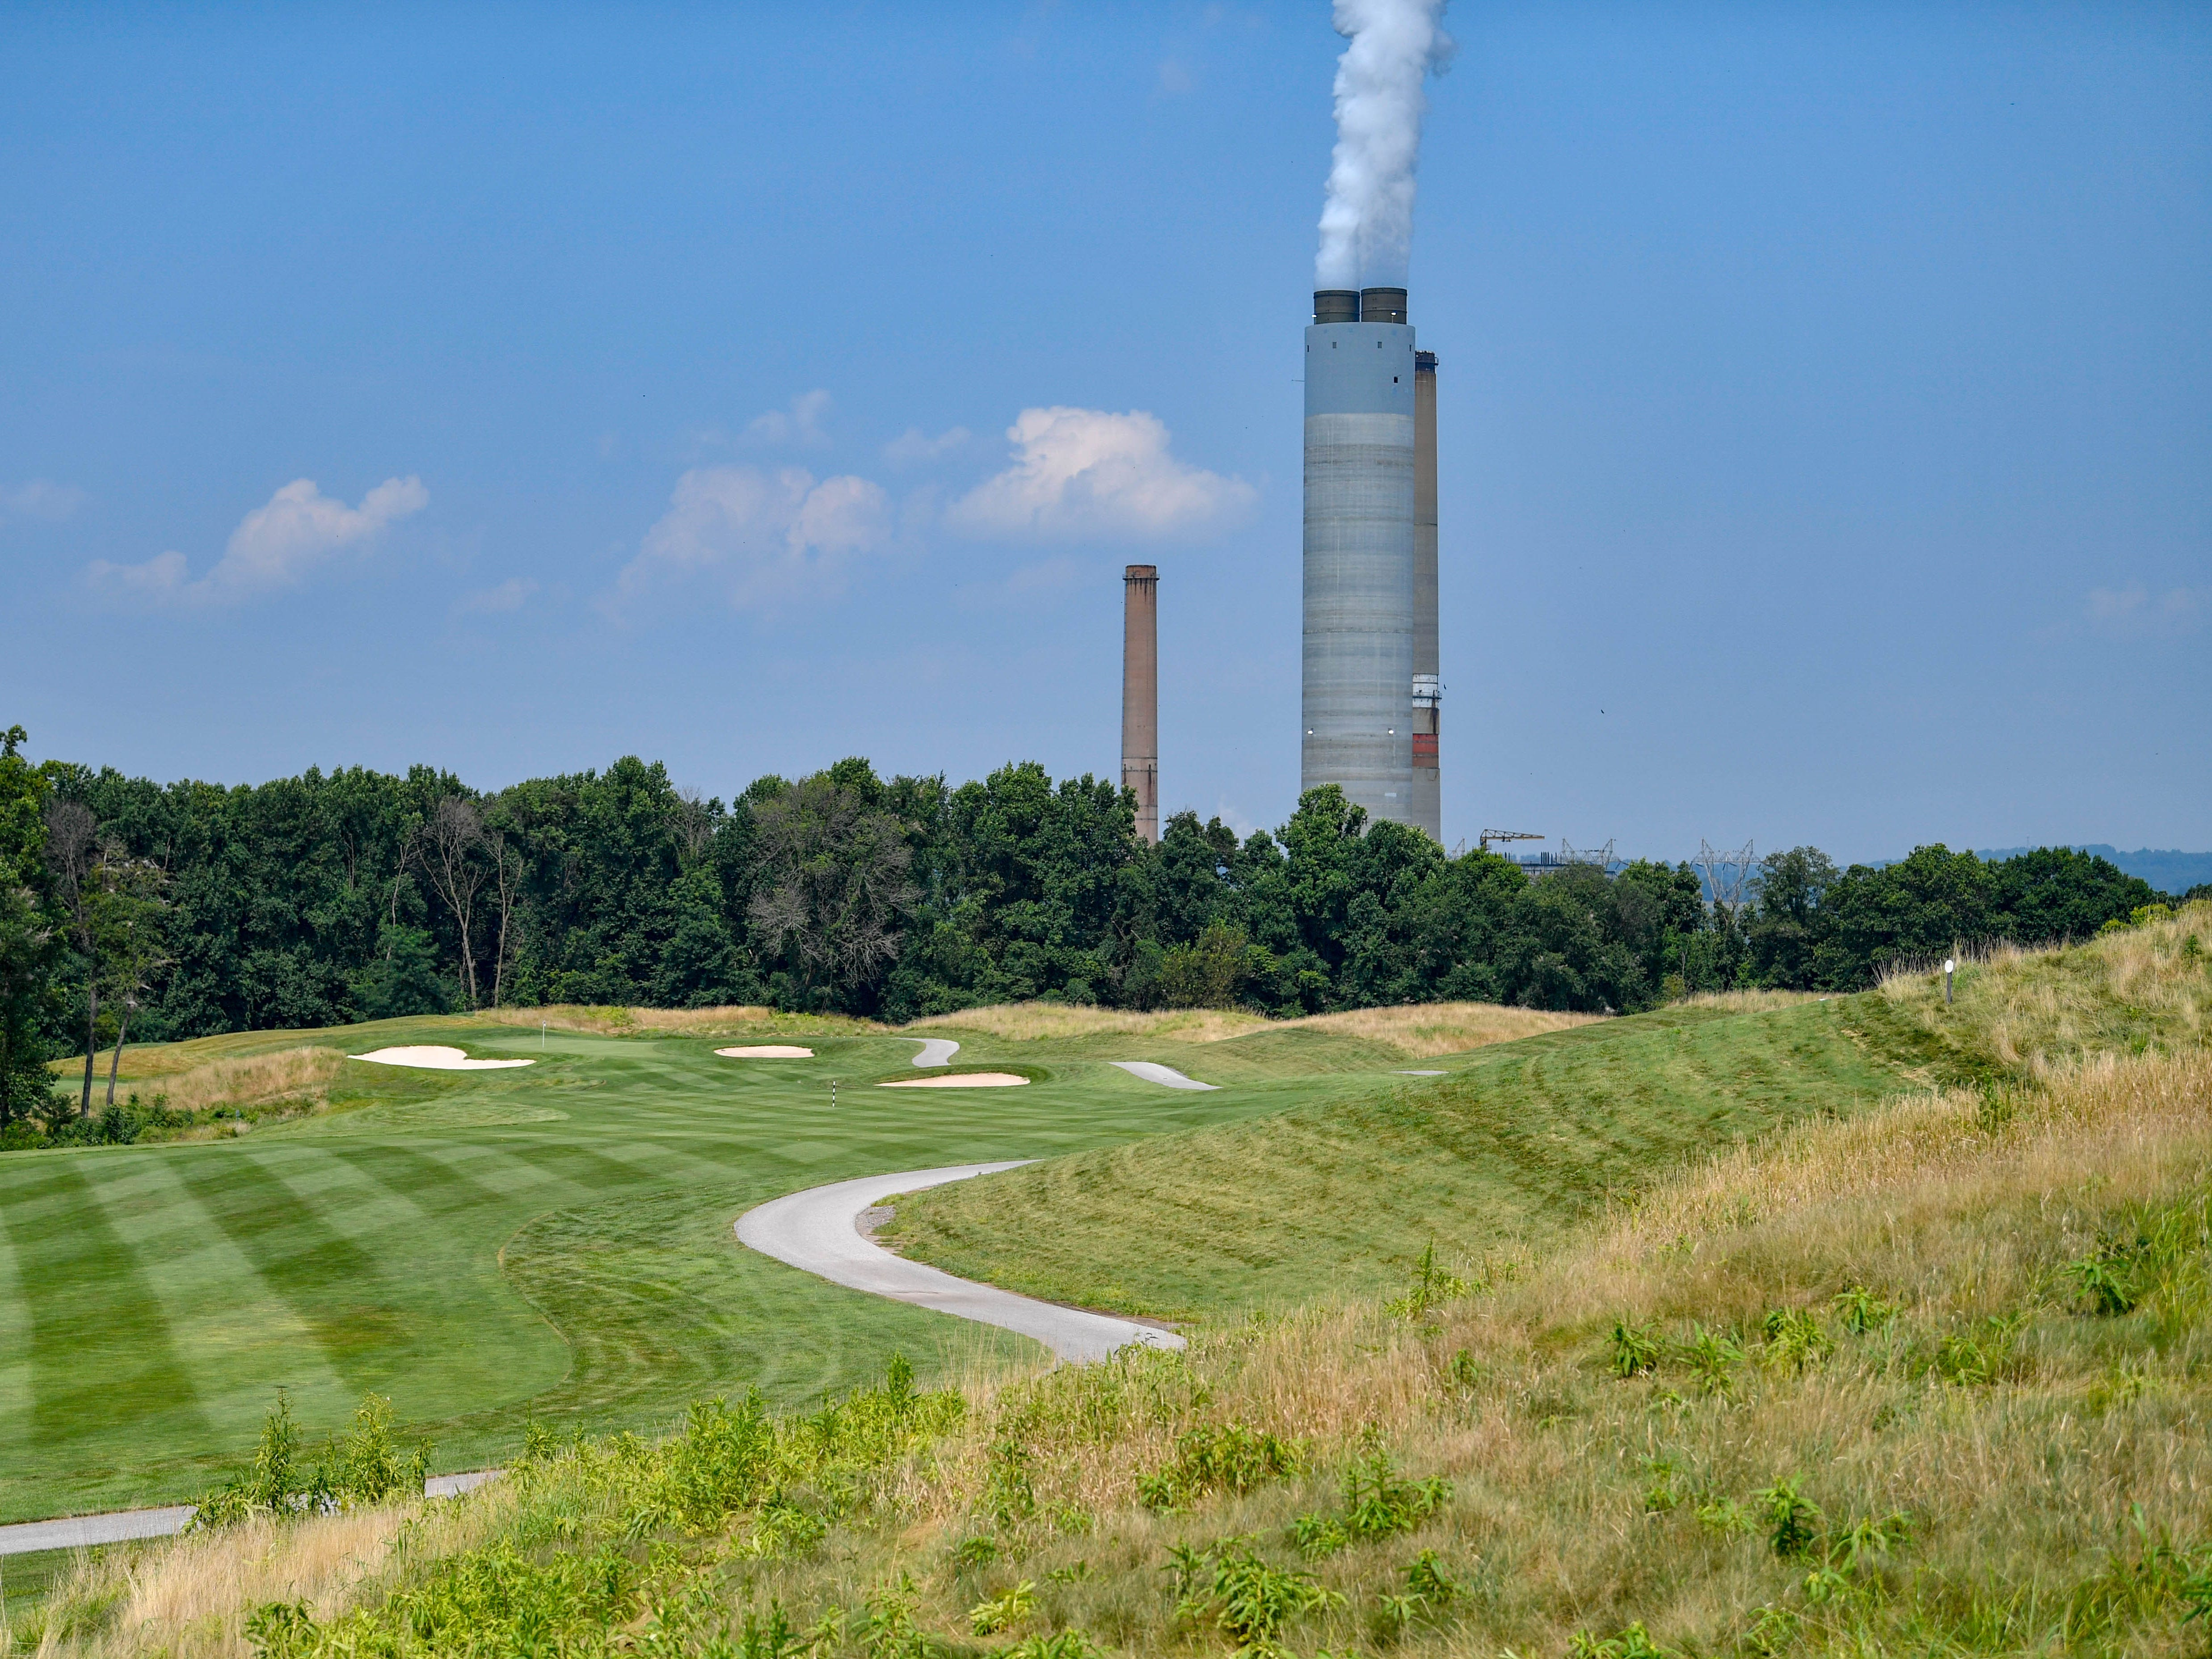 Smokestack backdrops make for unique views for competitors at Royal Manchester Golf Links, Wednesday, Aug. 16, 2018.